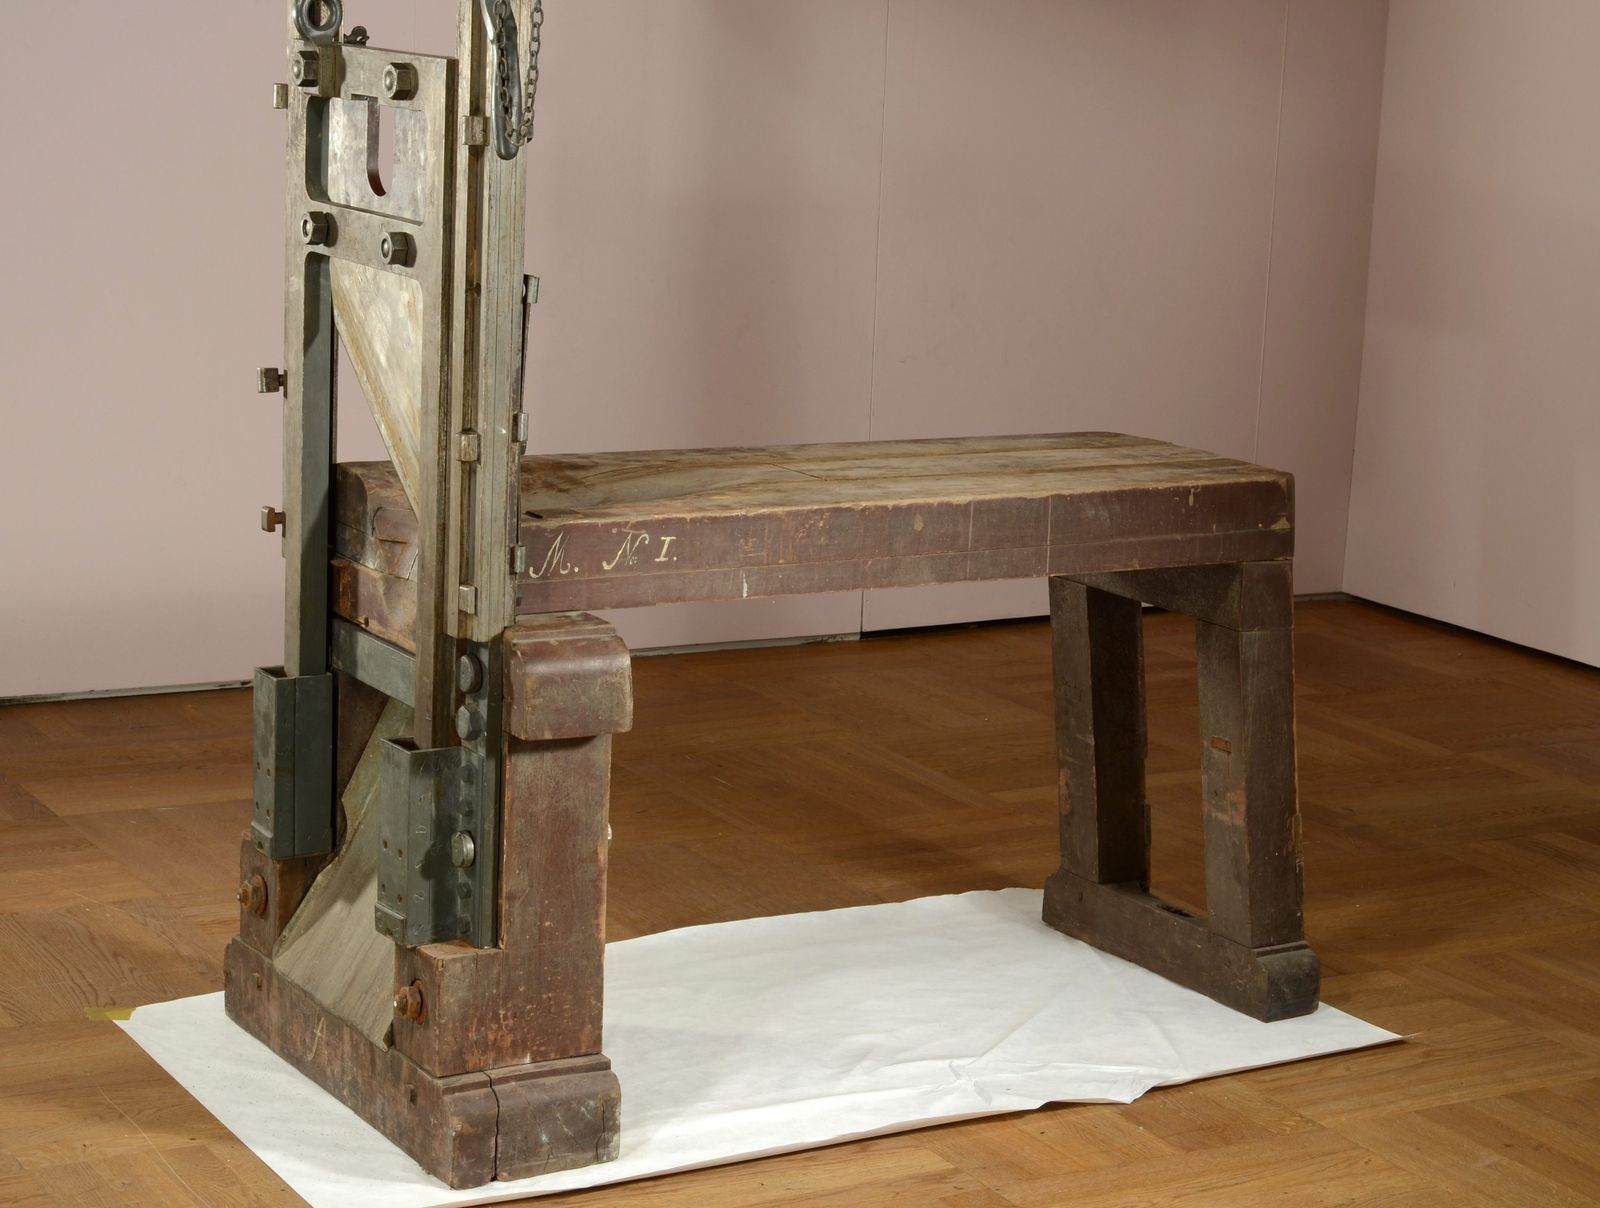 Guillotine of the Scholl siblings